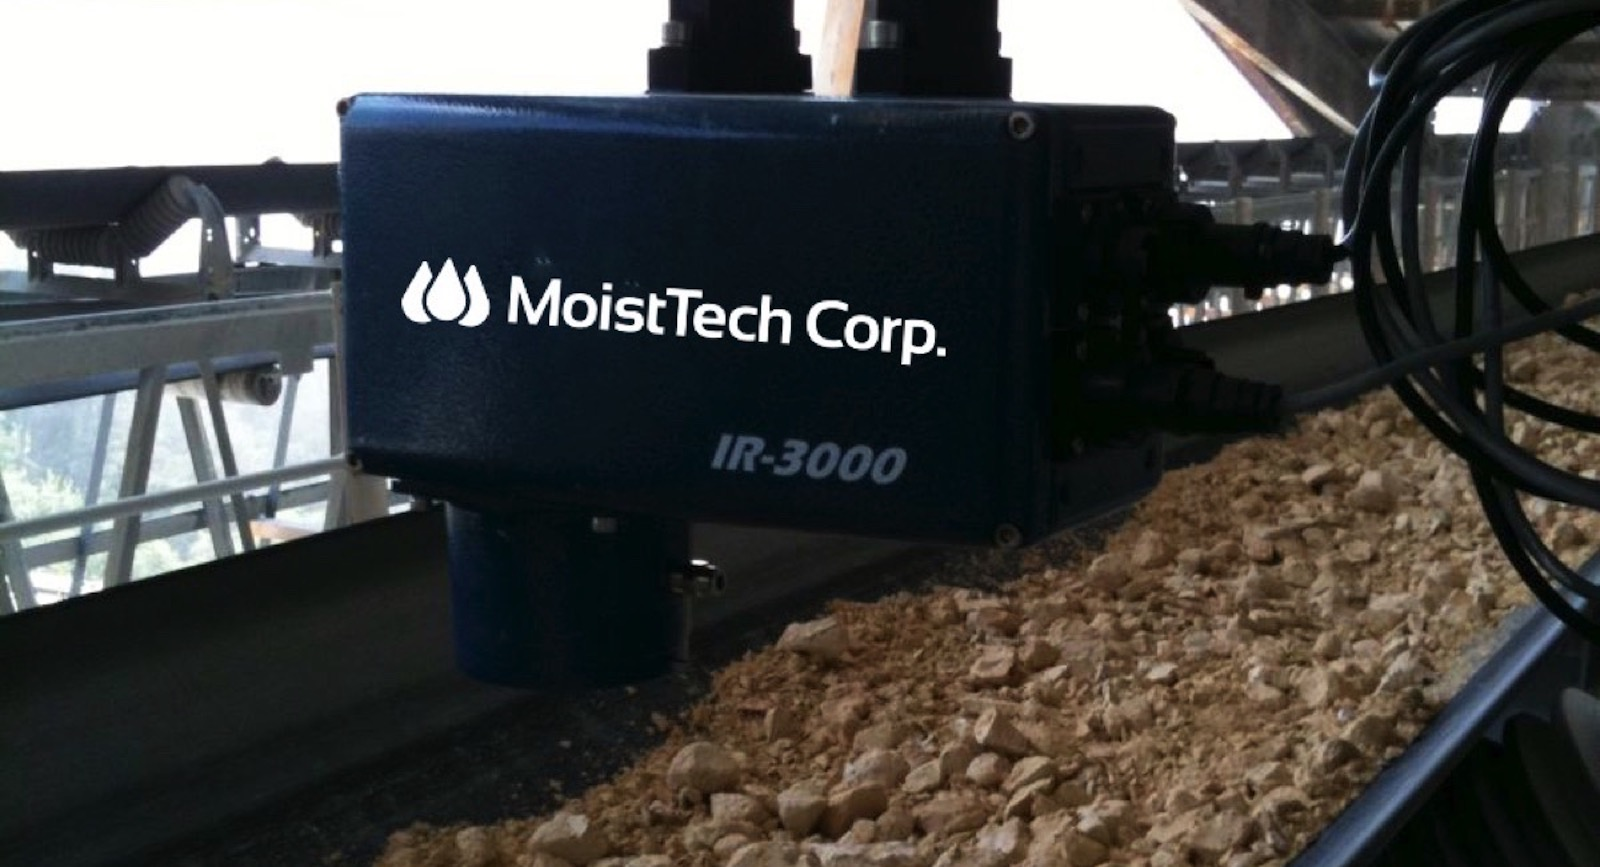 MoistTech Corp. and Weighing & Inspection announce Partnership in the Benelux Region